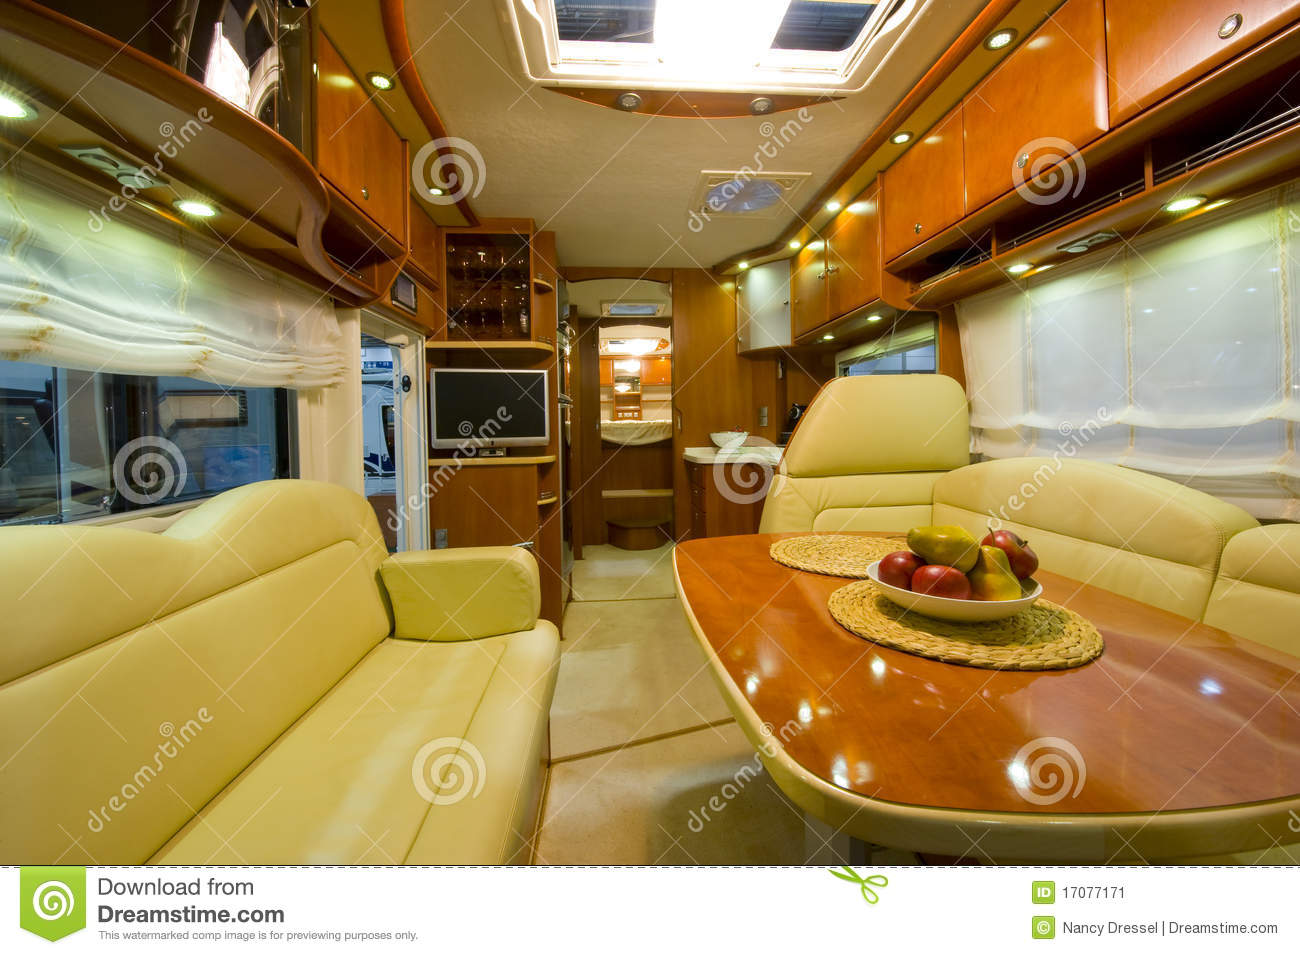 Camping car neuf int rieur image stock image 17077171 for Store interieur camping car